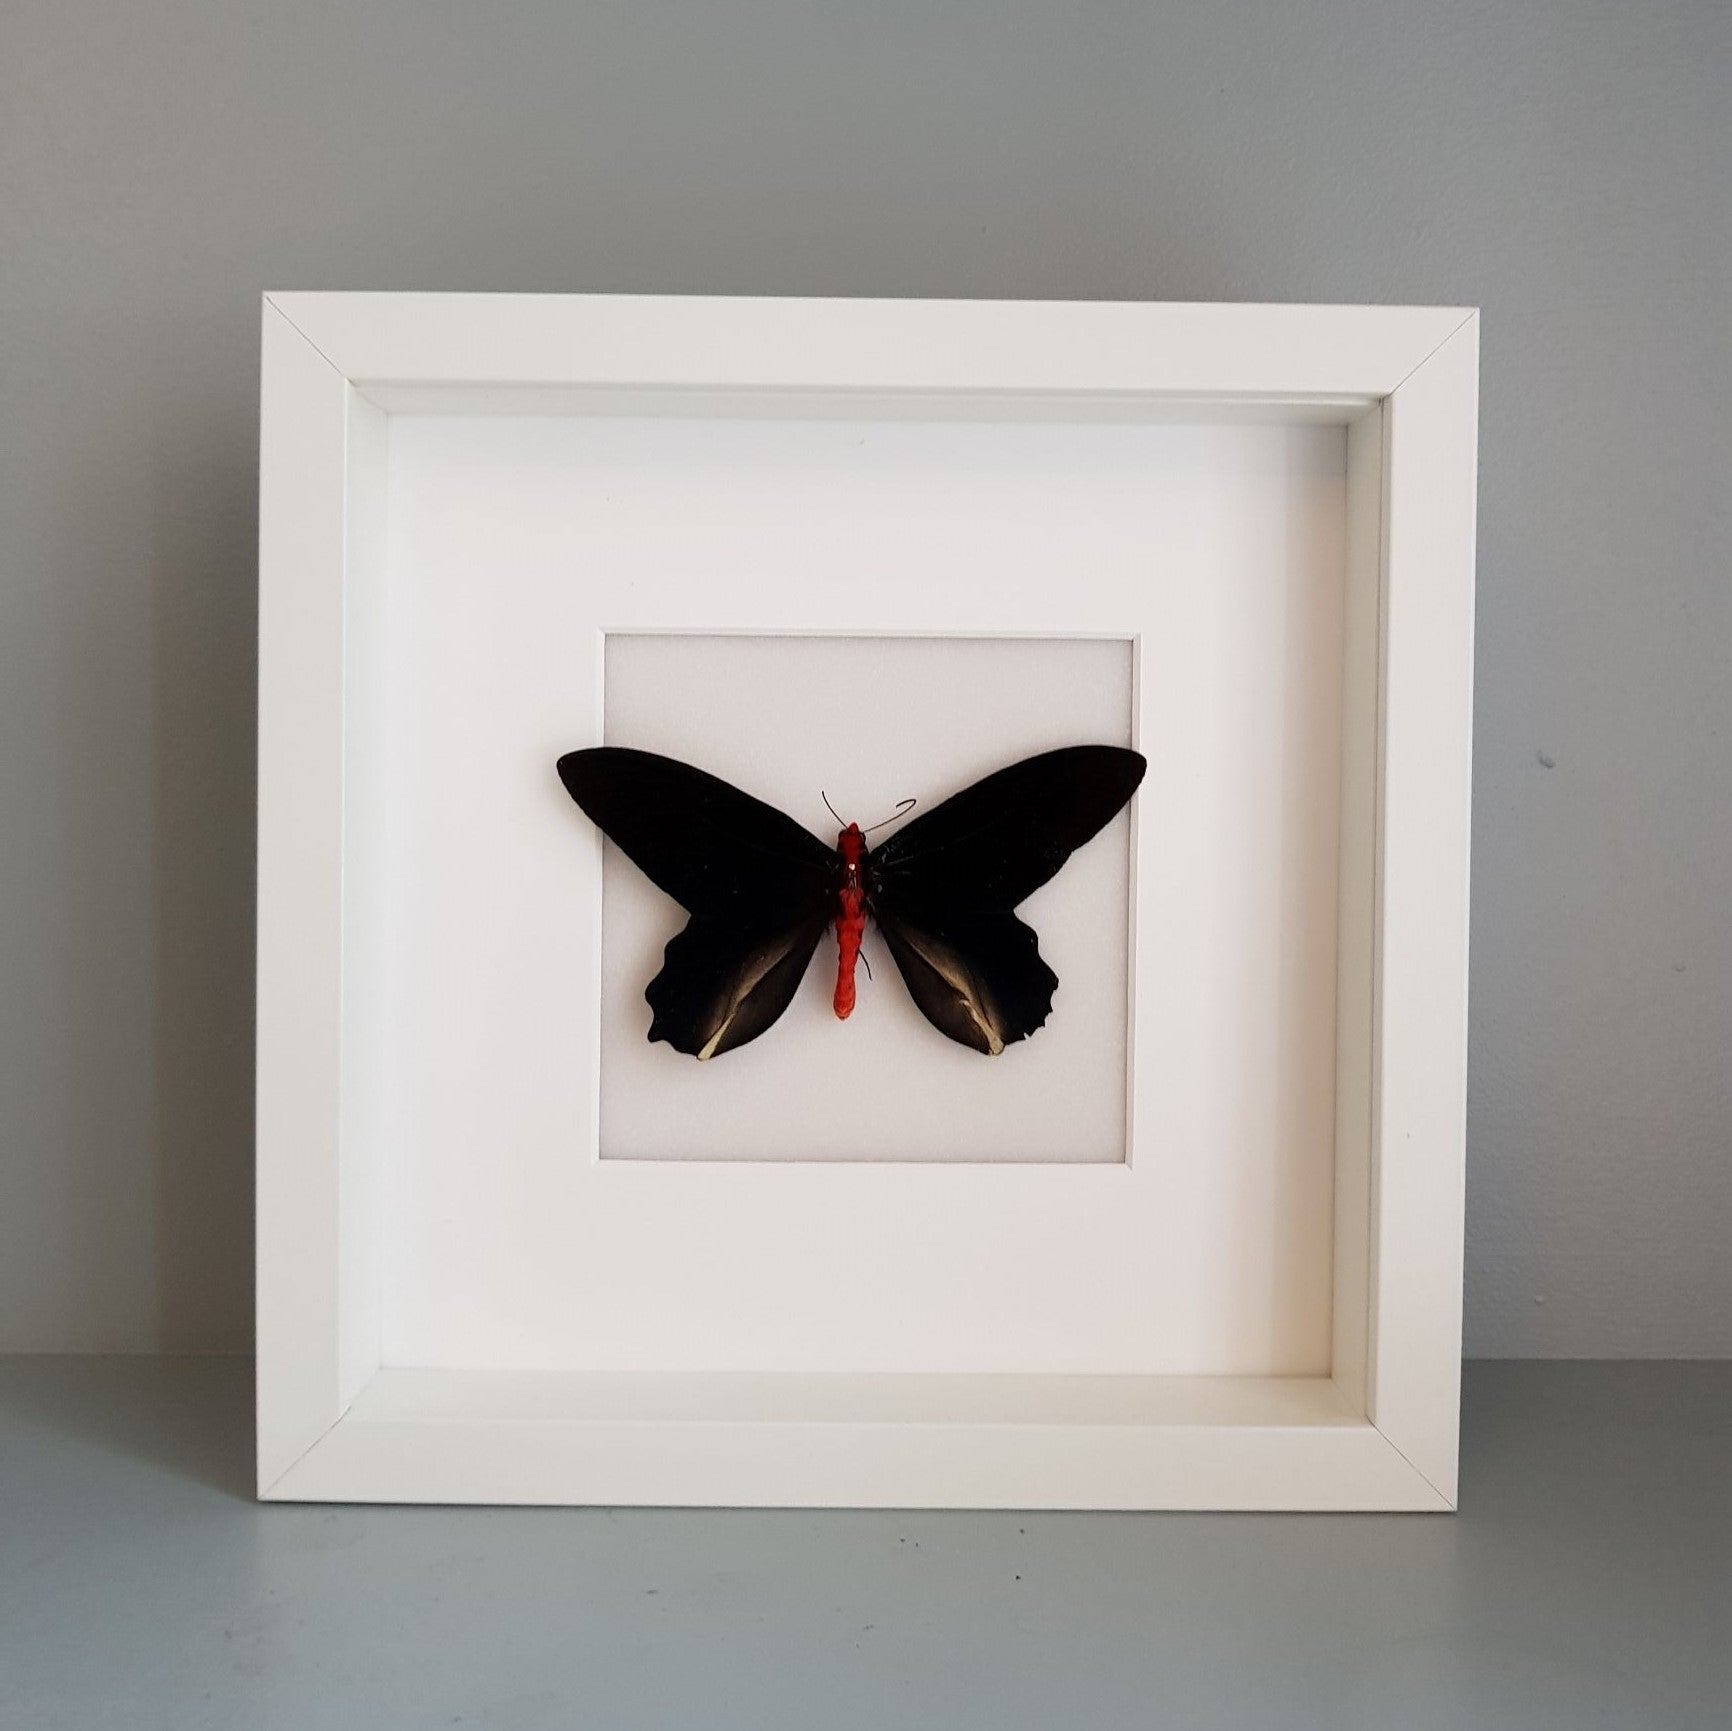 gemmas-curiosity-shop - Red-bodied swallowtail - Gemma's Curiosity Shop - Butterfly